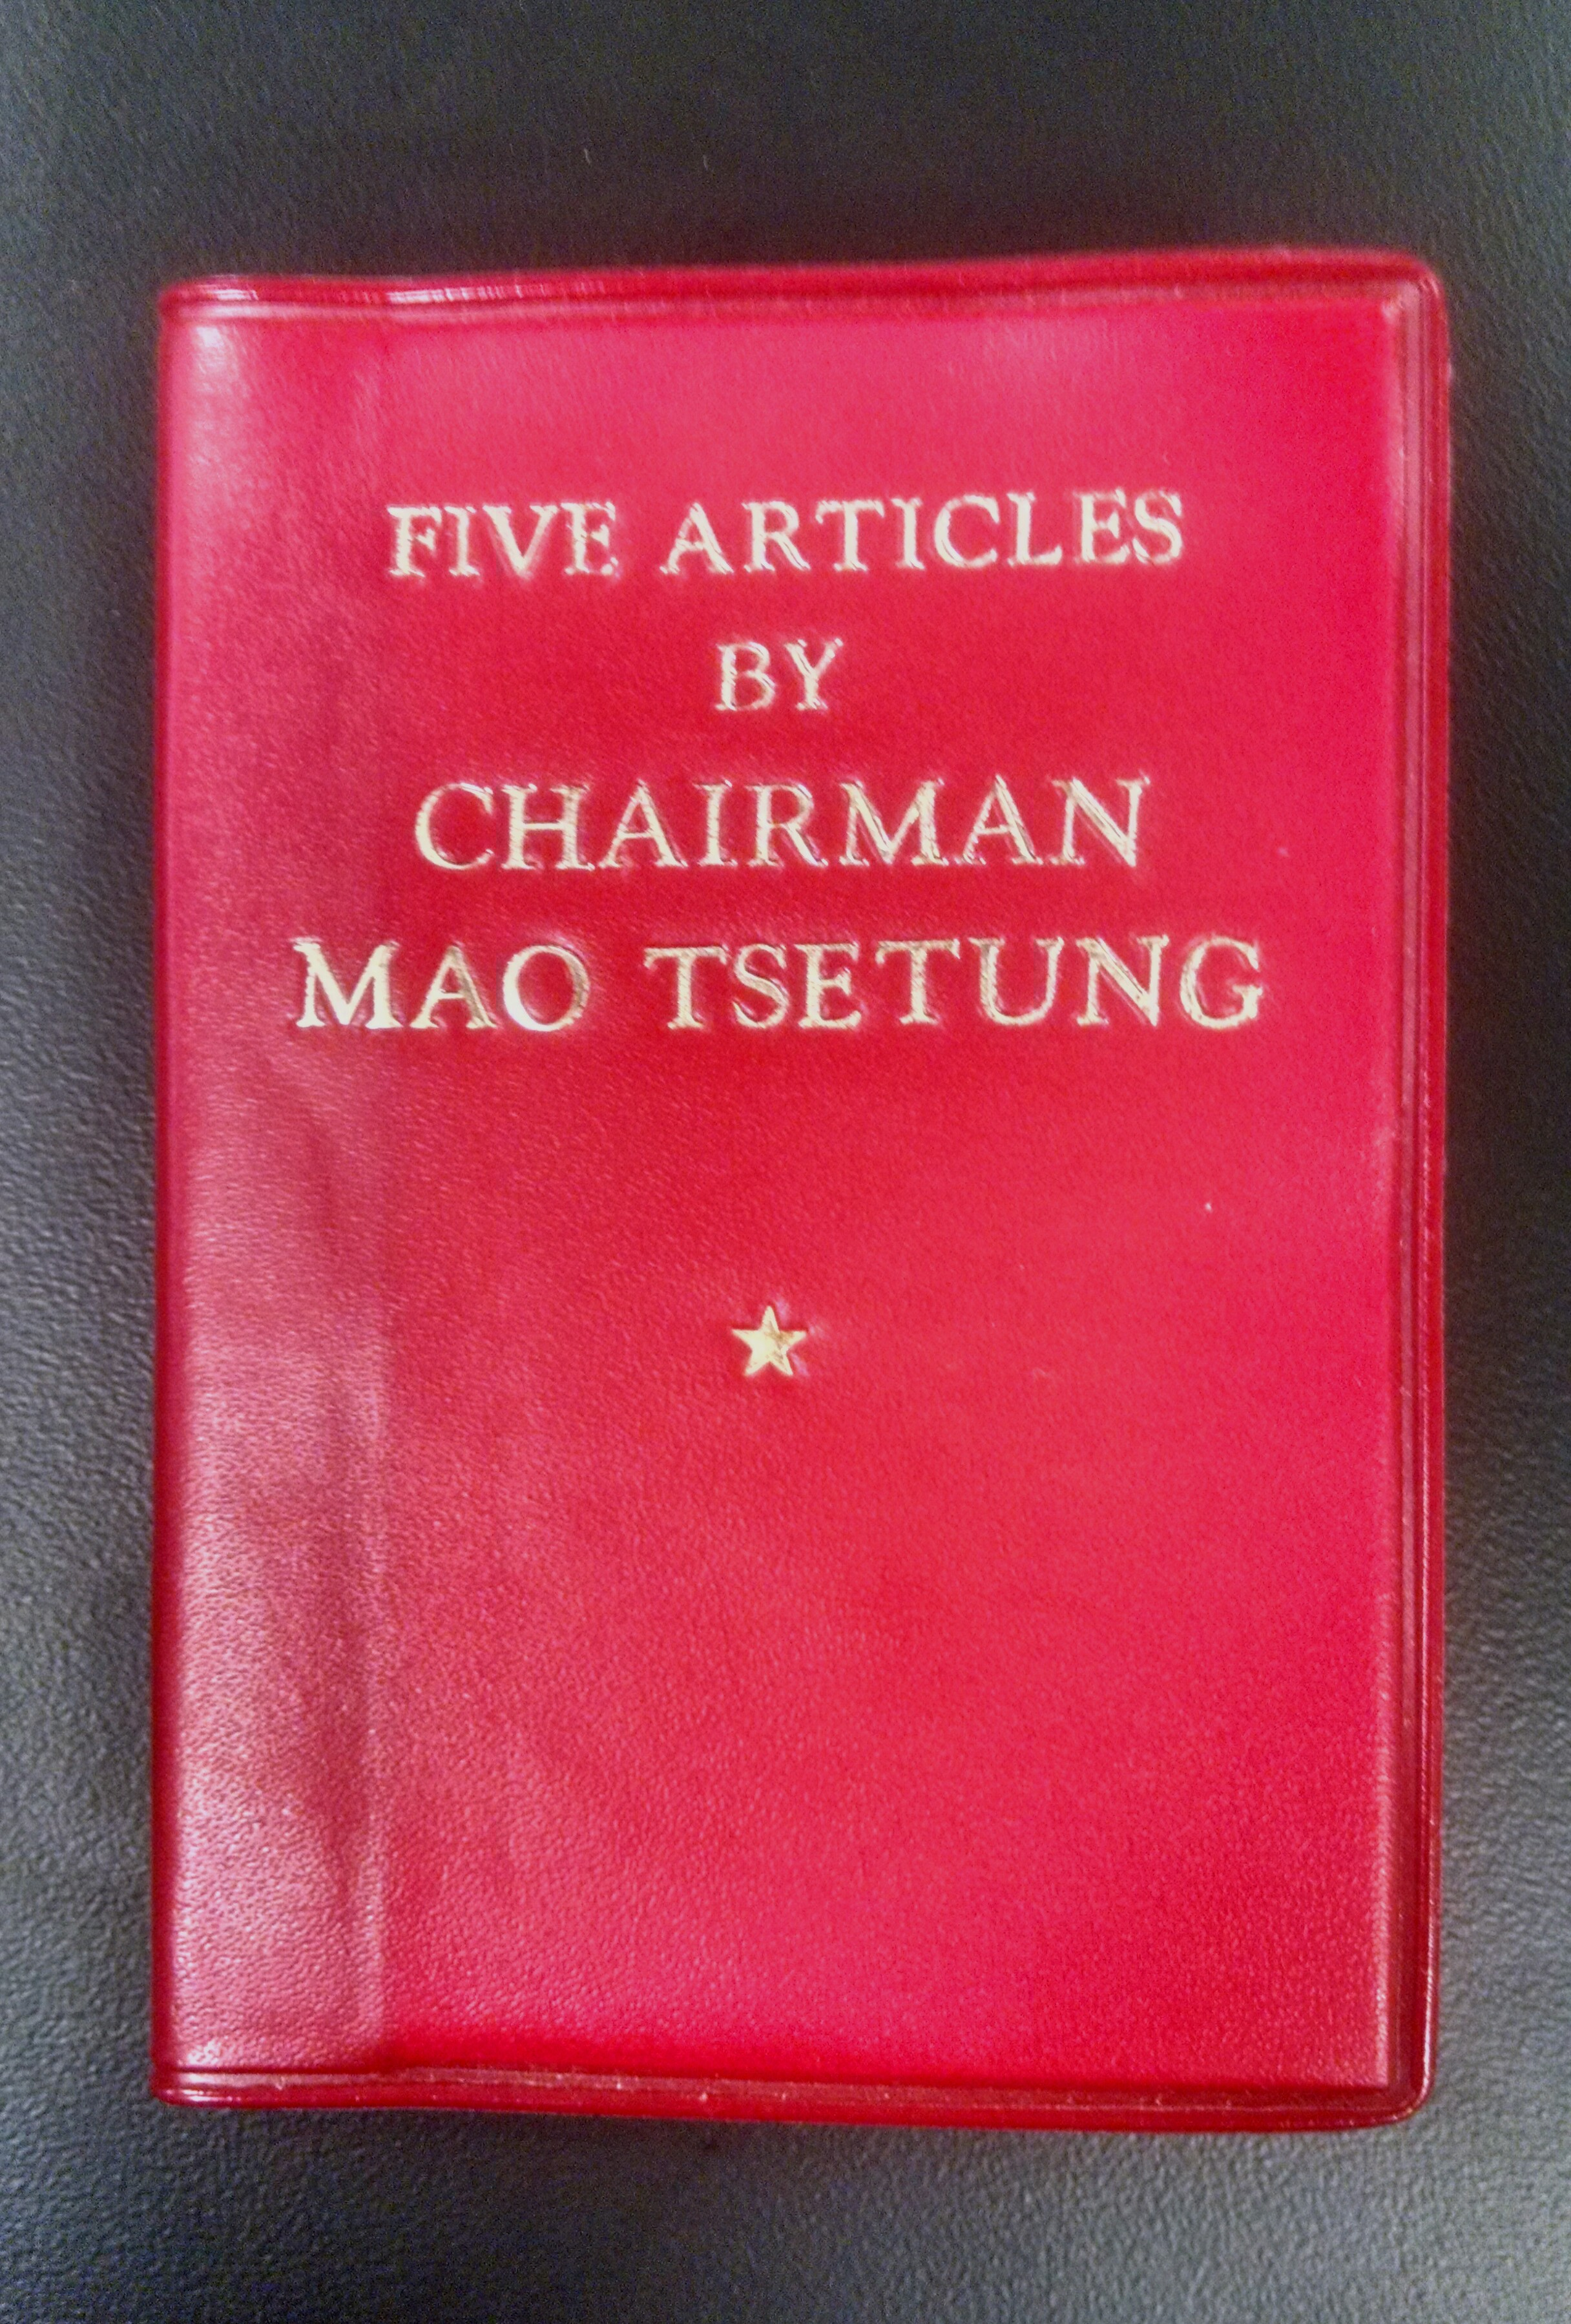 Five Articles by Chairman Mao